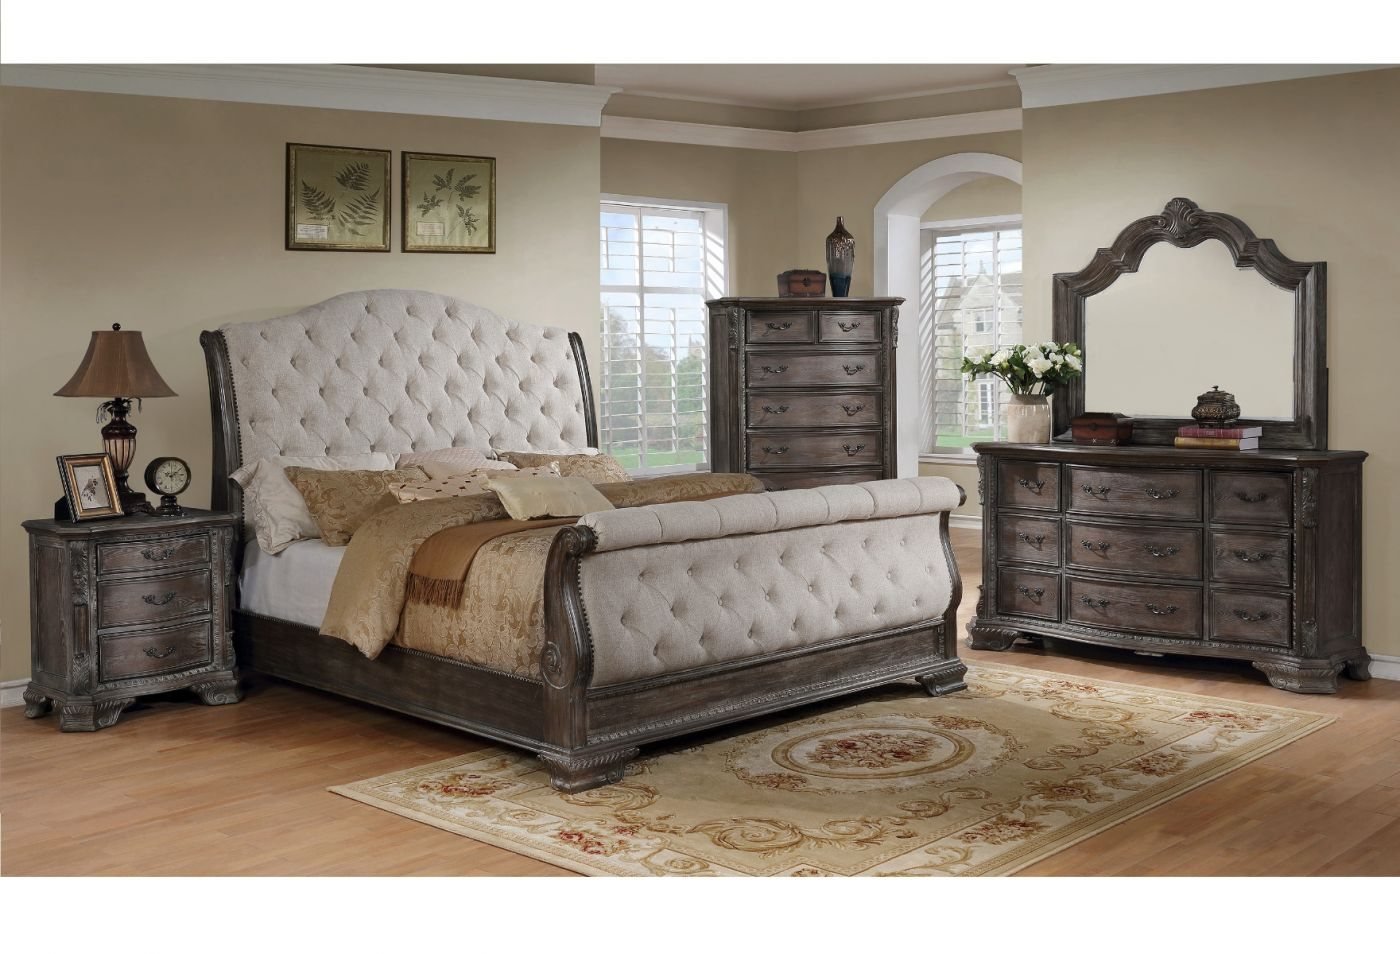 Fresh Sleigh Bedroom Sets Minimalist